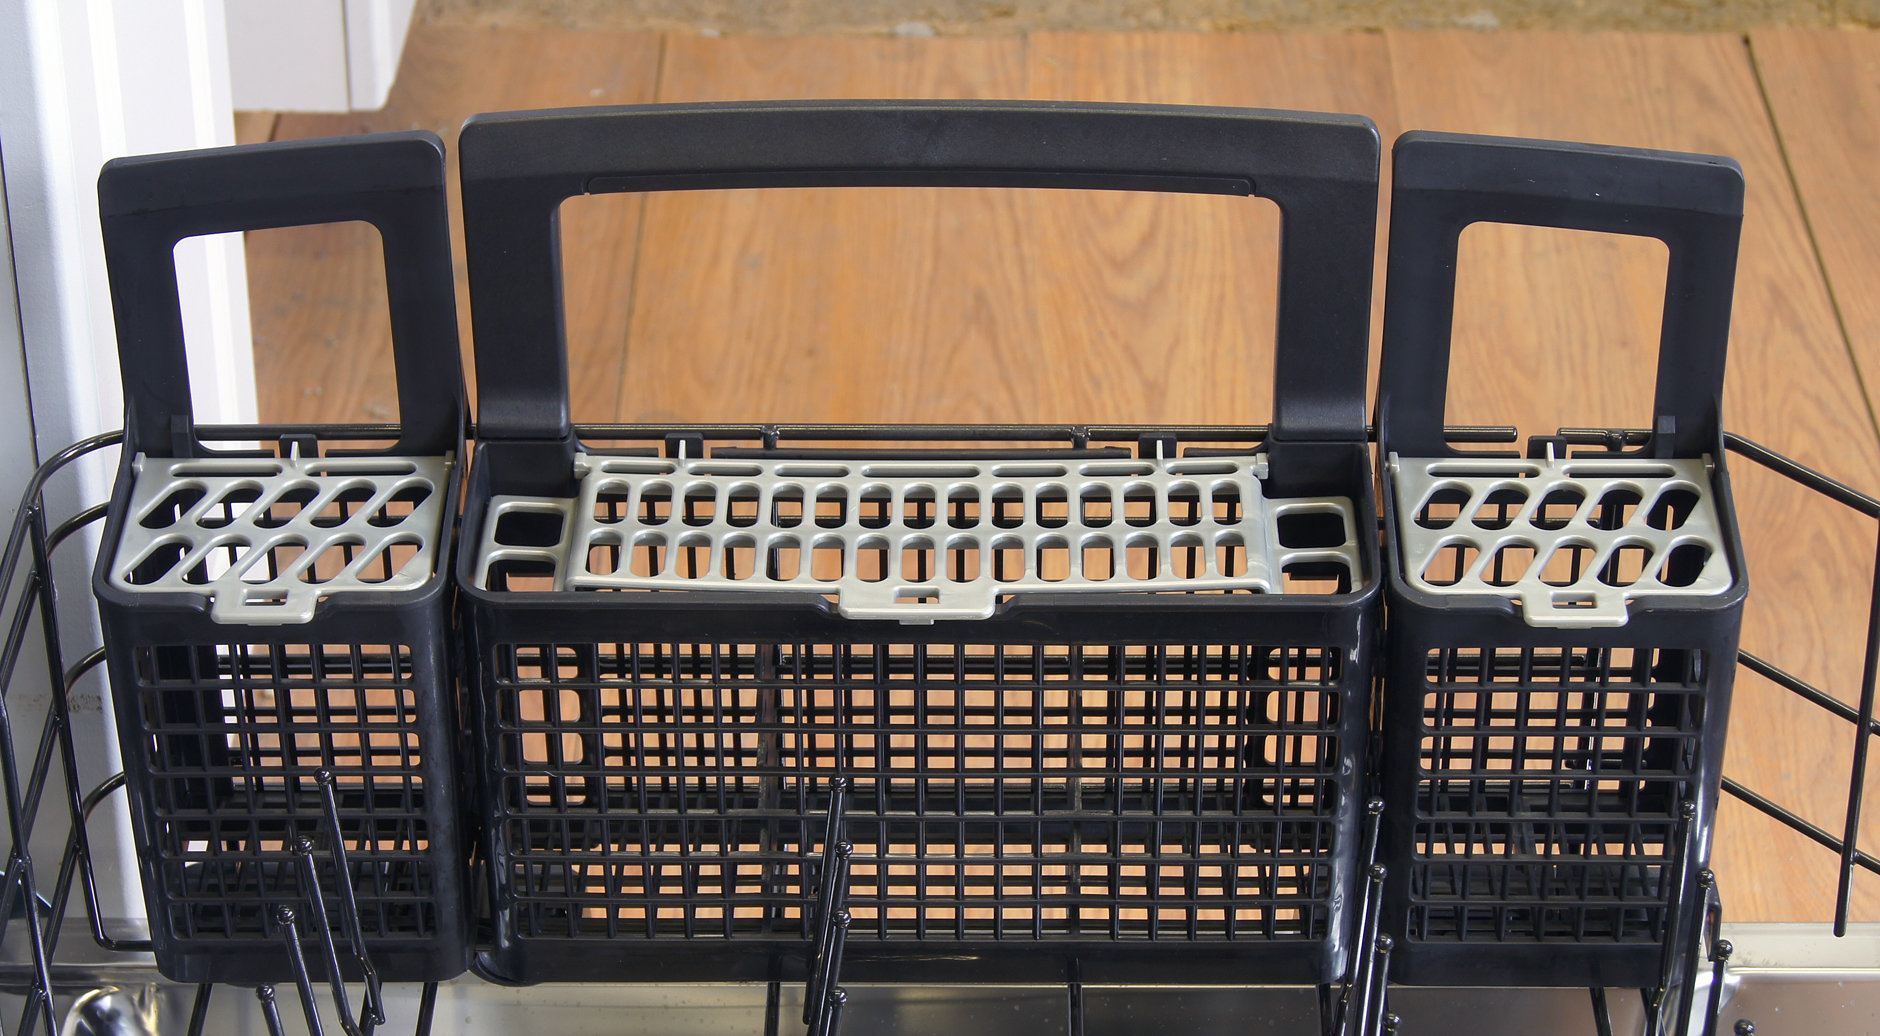 GE Cafe CDT725SSFSS cutlery basket